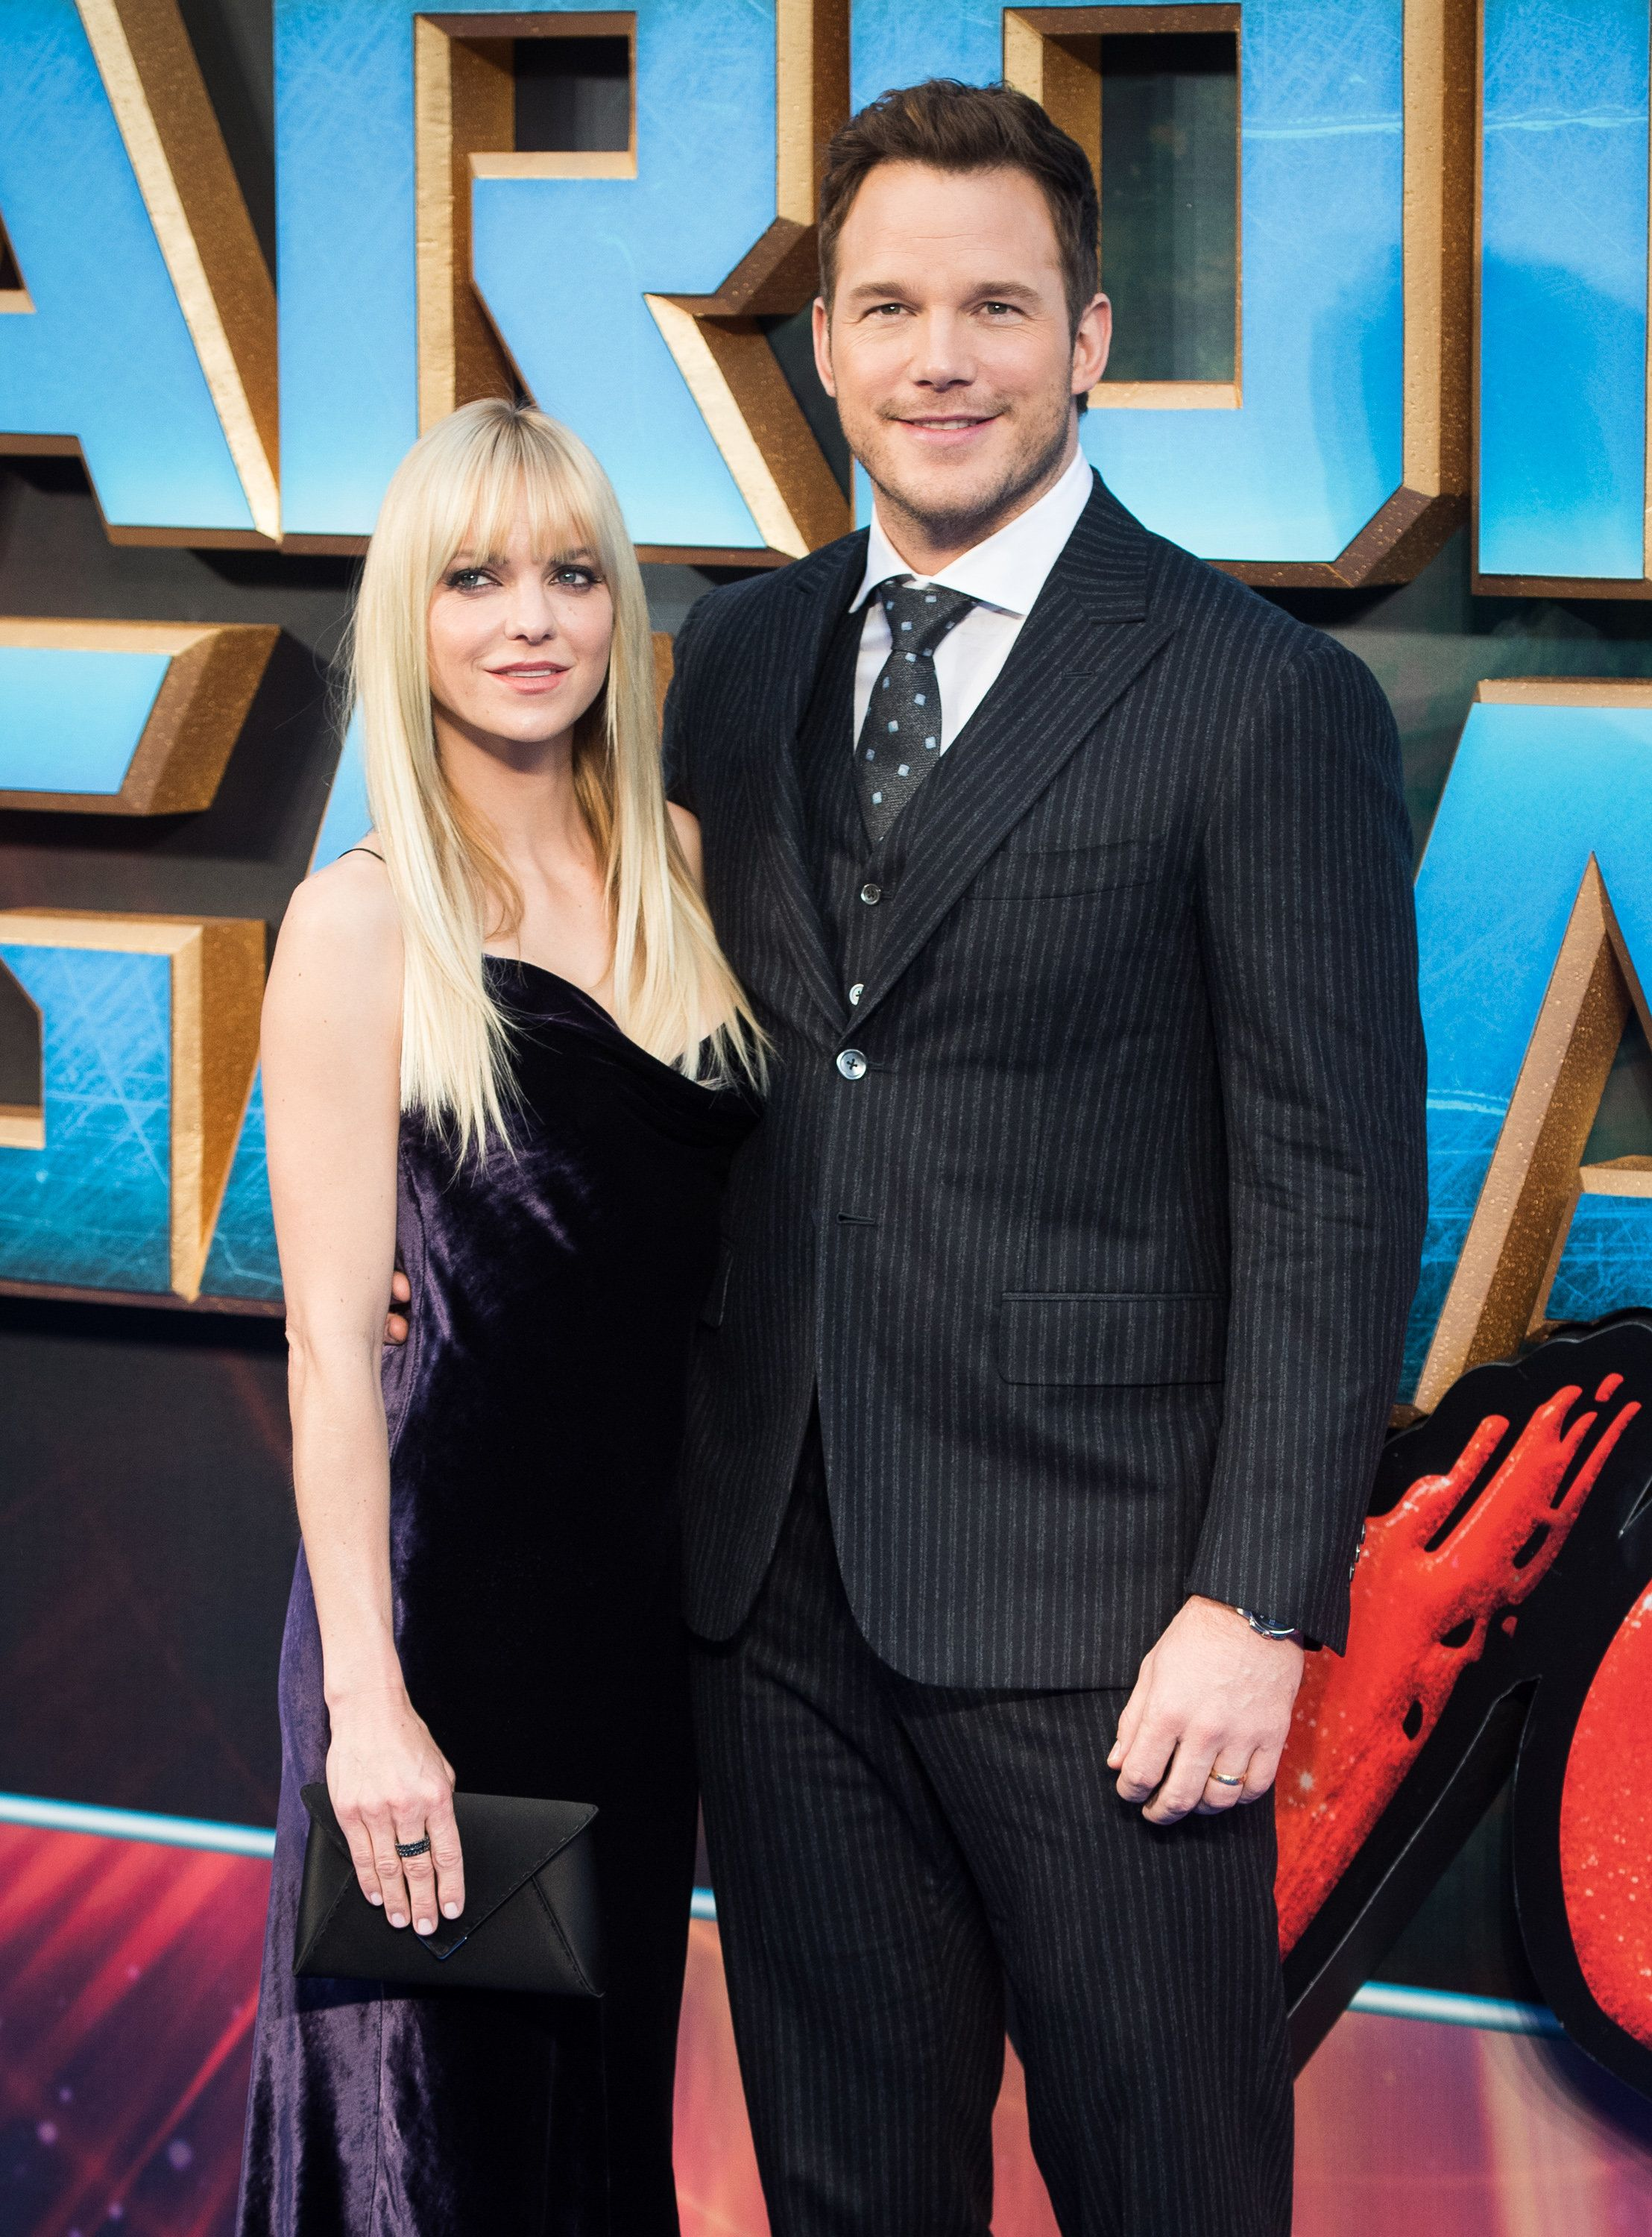 Chris Pratt And Anna Faris Split After 8 Years Of Marriage